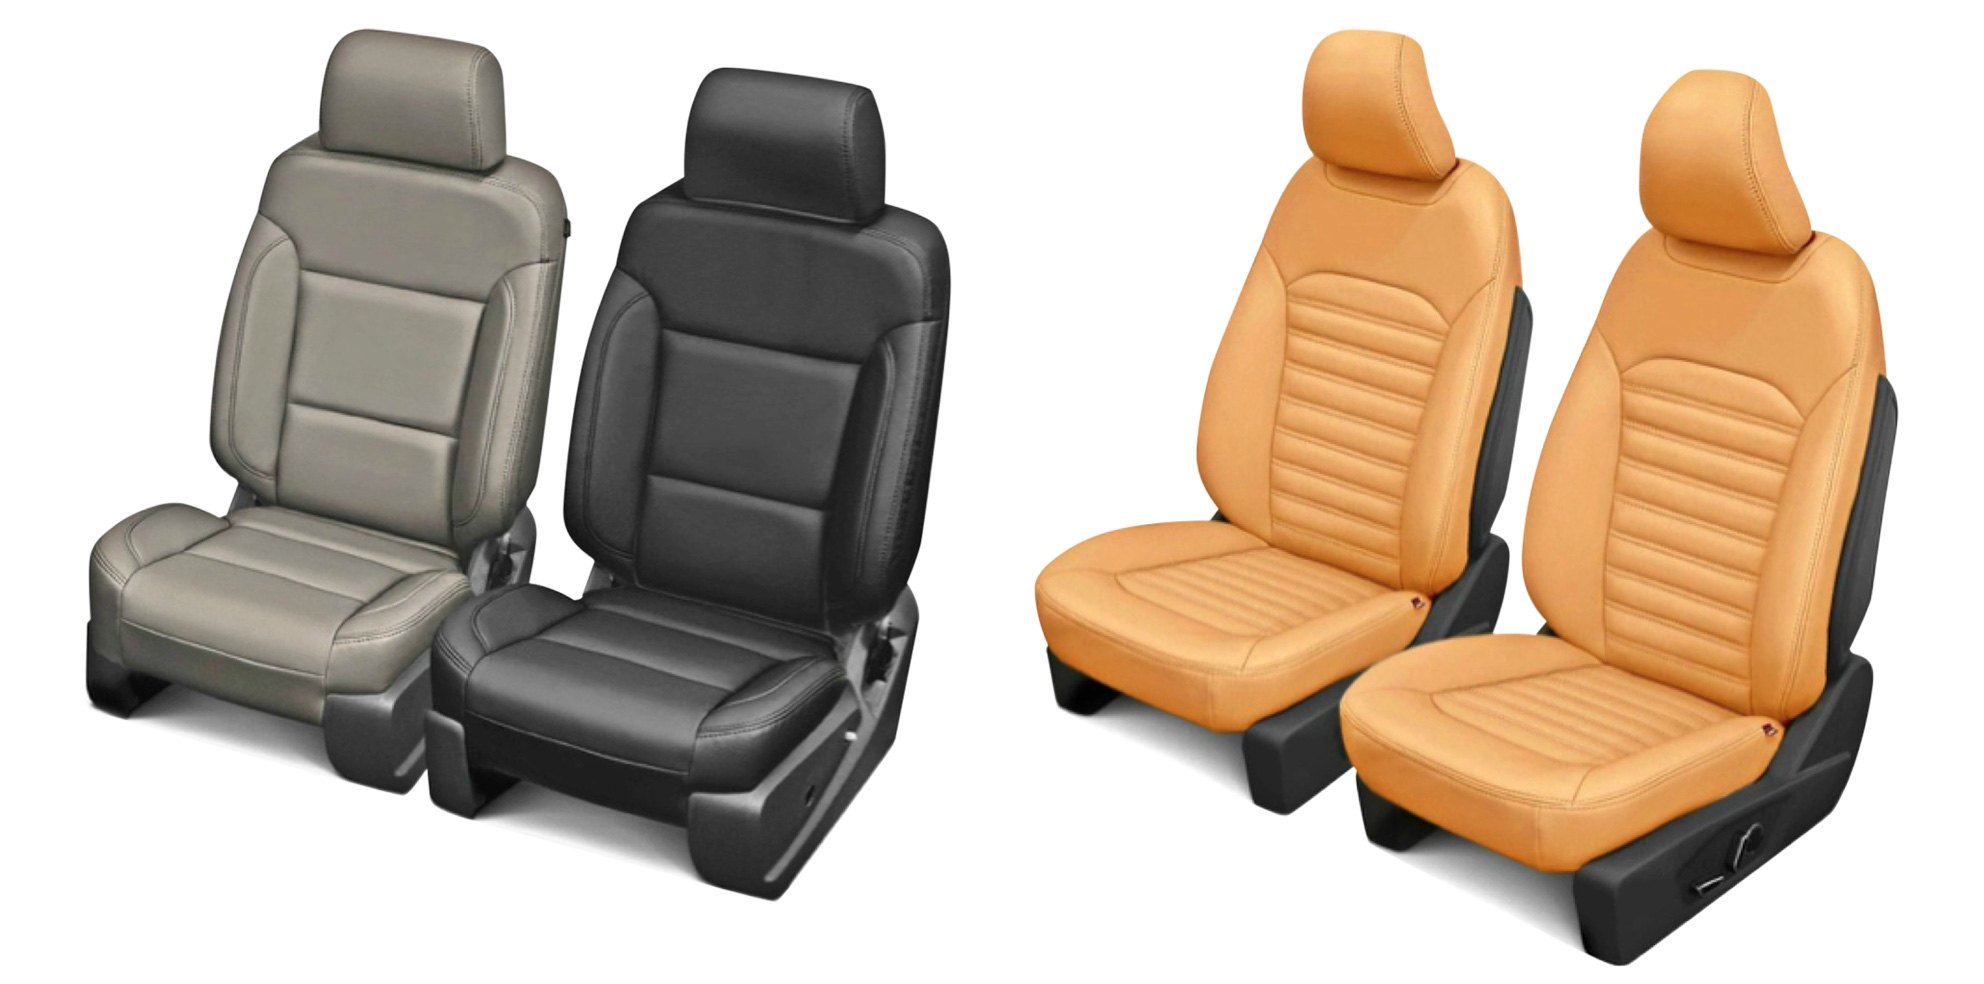 leather chair repair kit wholesale wedding covers which seat cover fabric works best for my needs